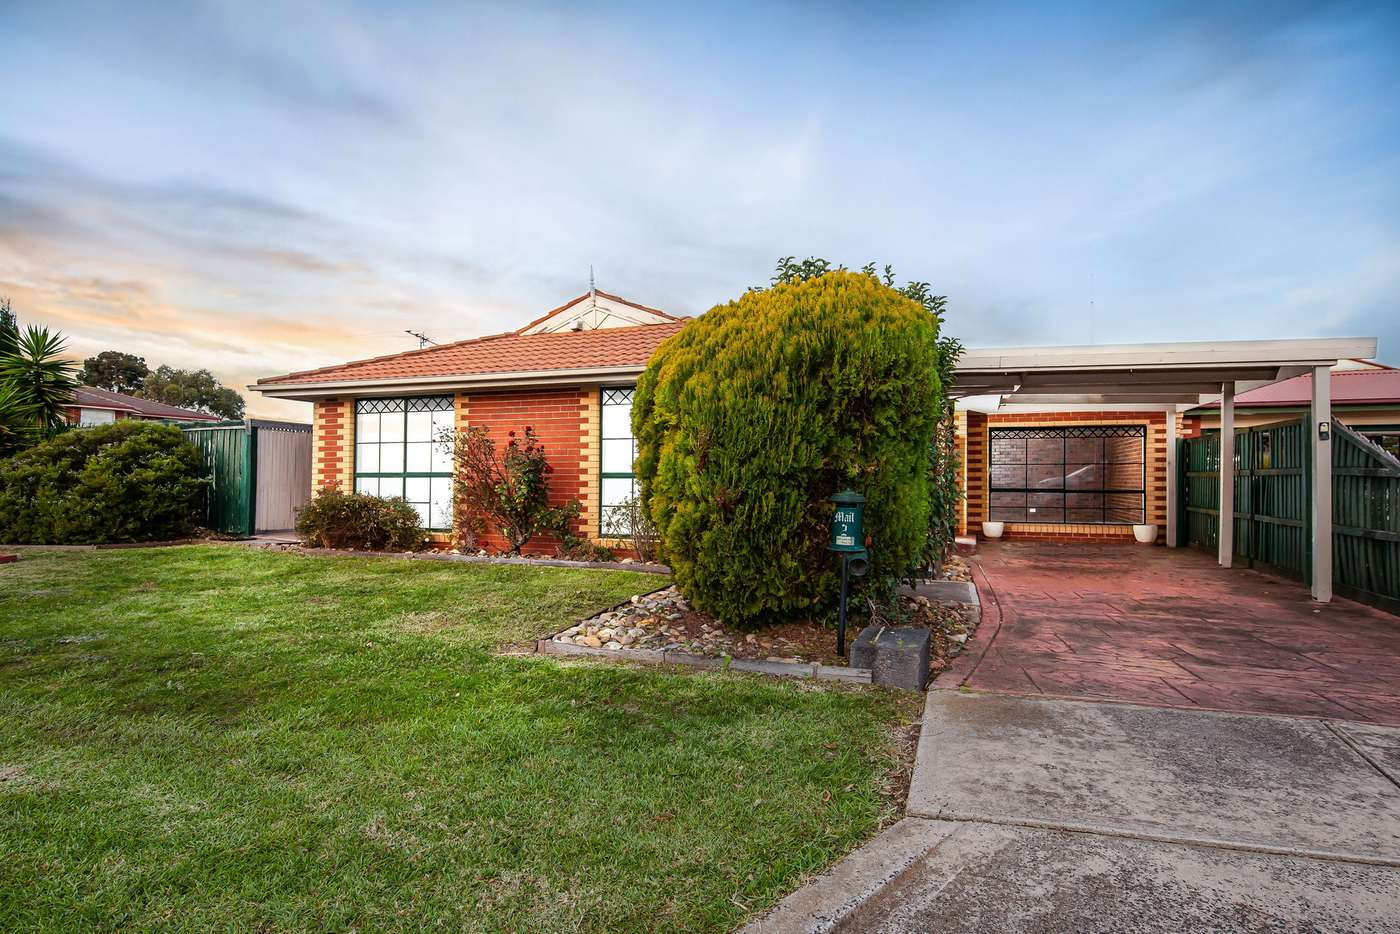 Main view of Homely house listing, 2 Crabbe Court, Delahey VIC 3037